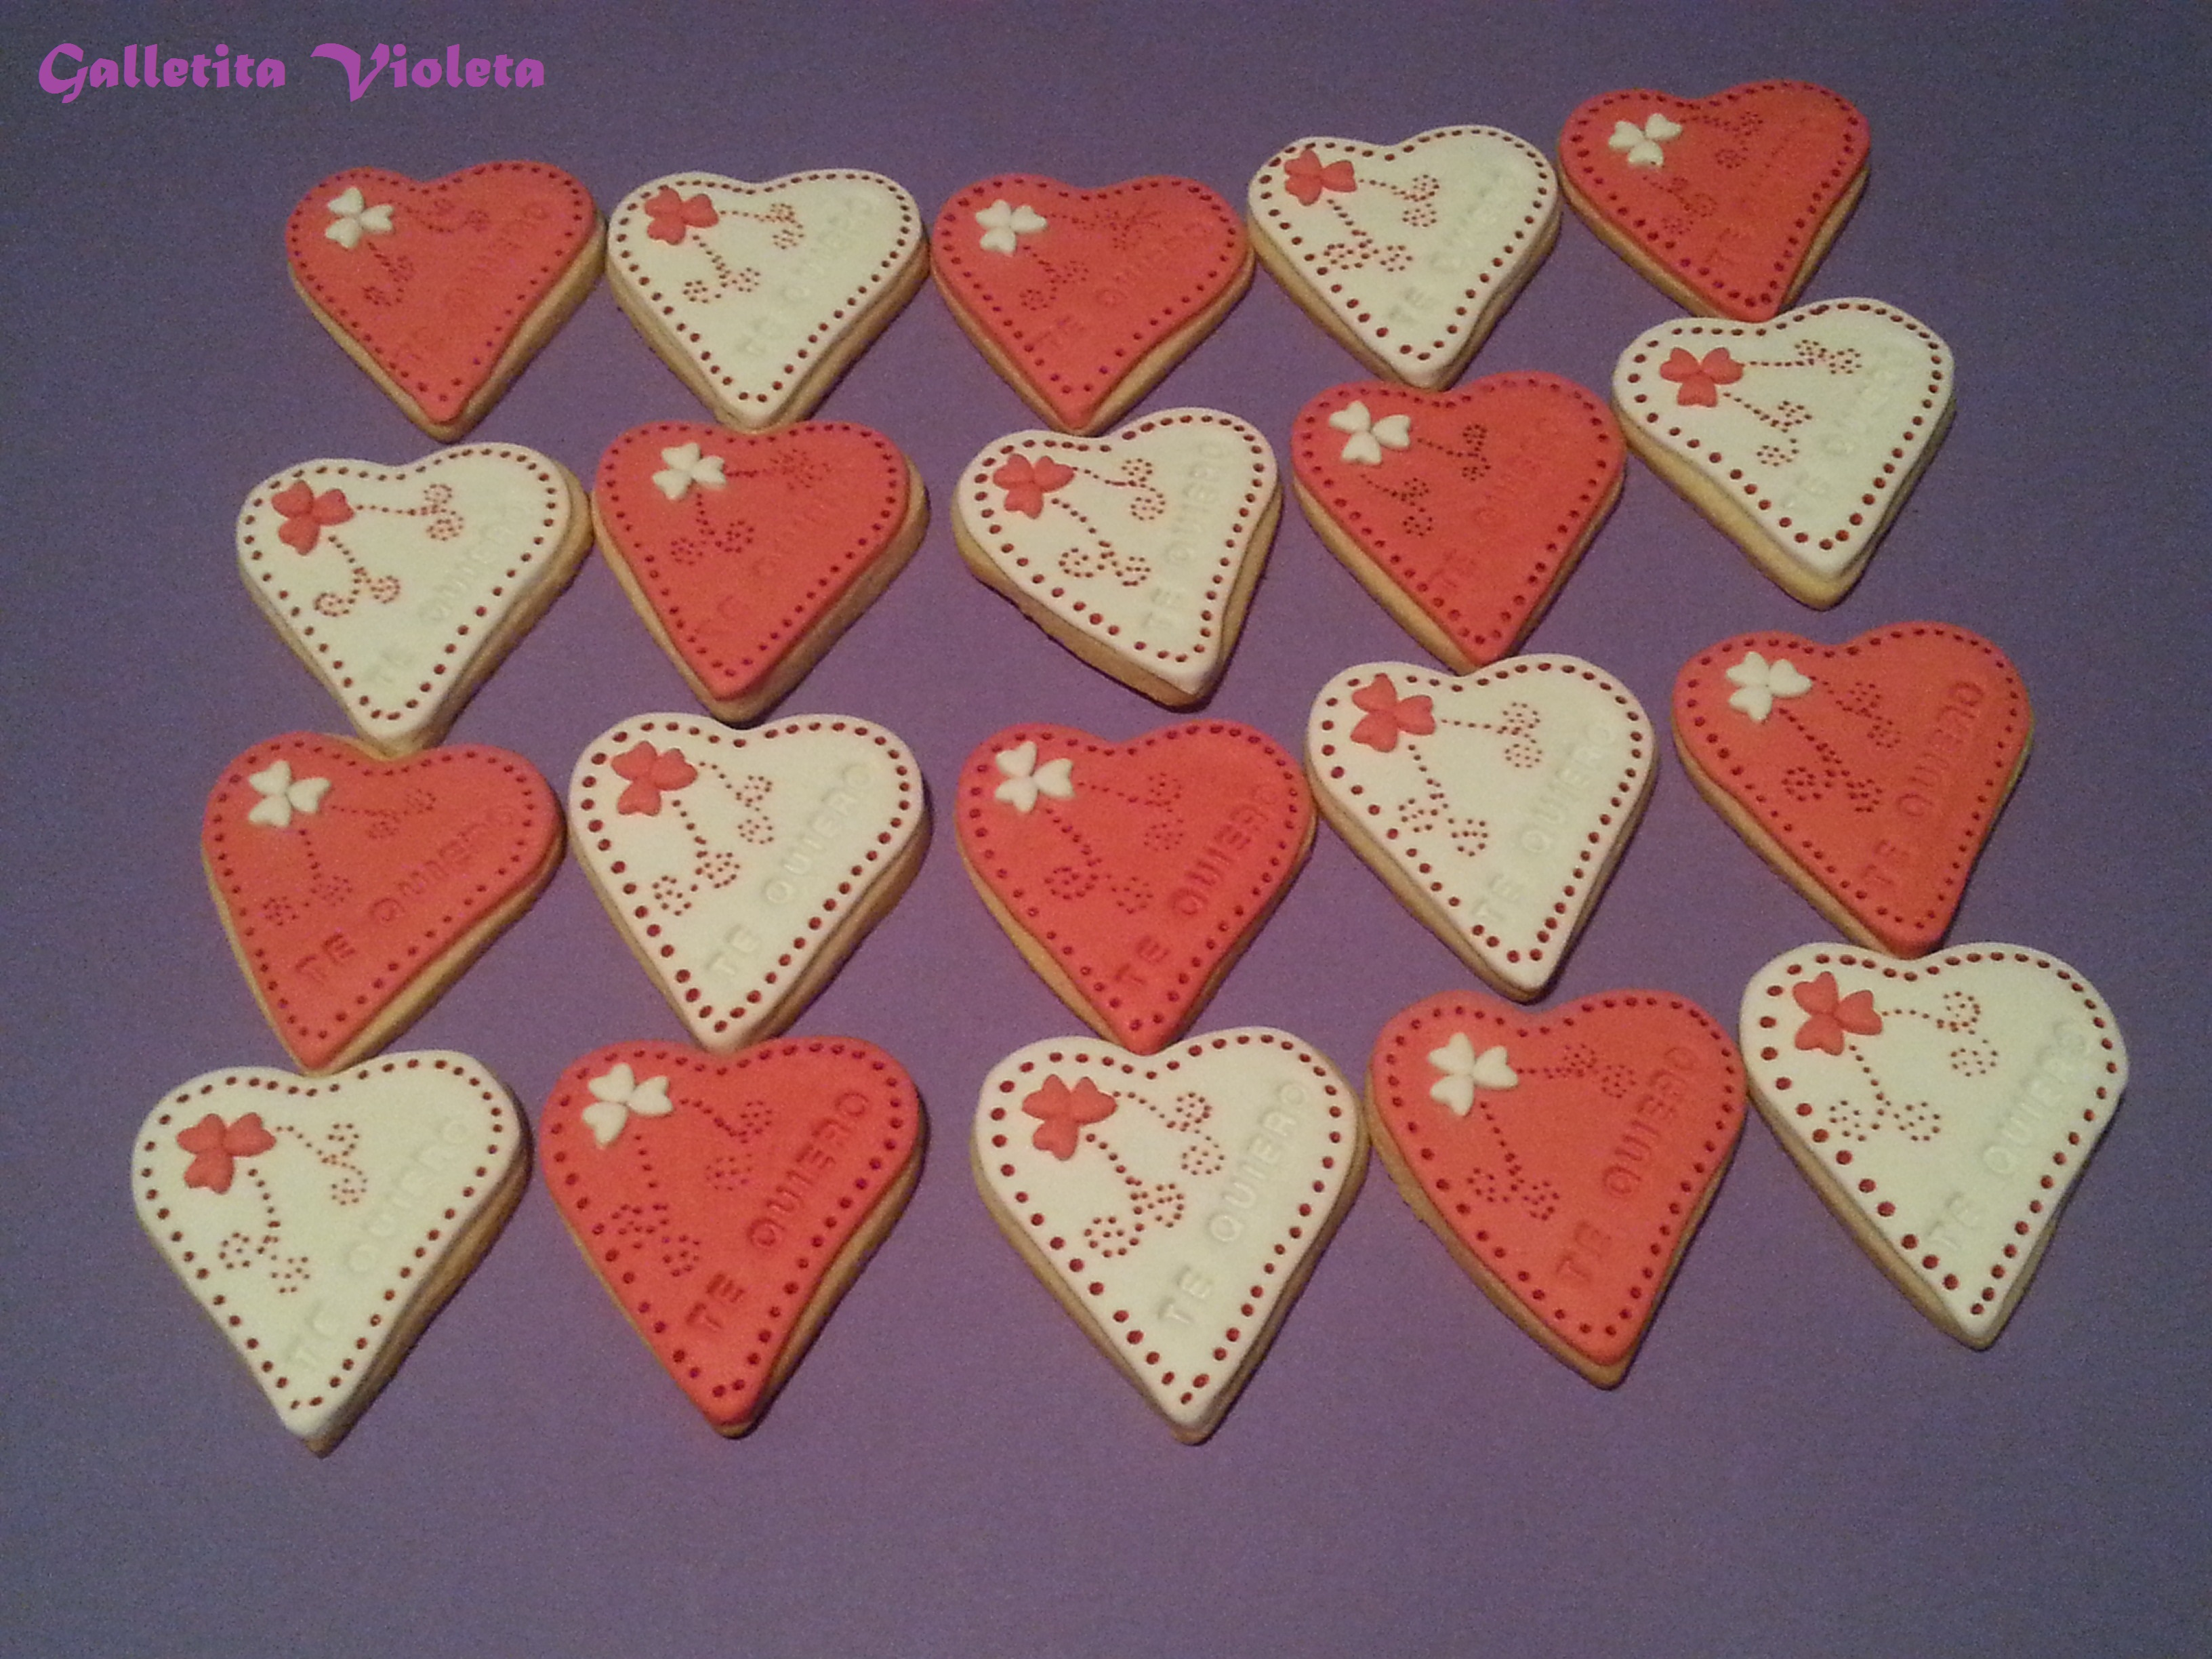 Galletas De Corazon Decoradas Galletas Decoradas Galletita Violeta